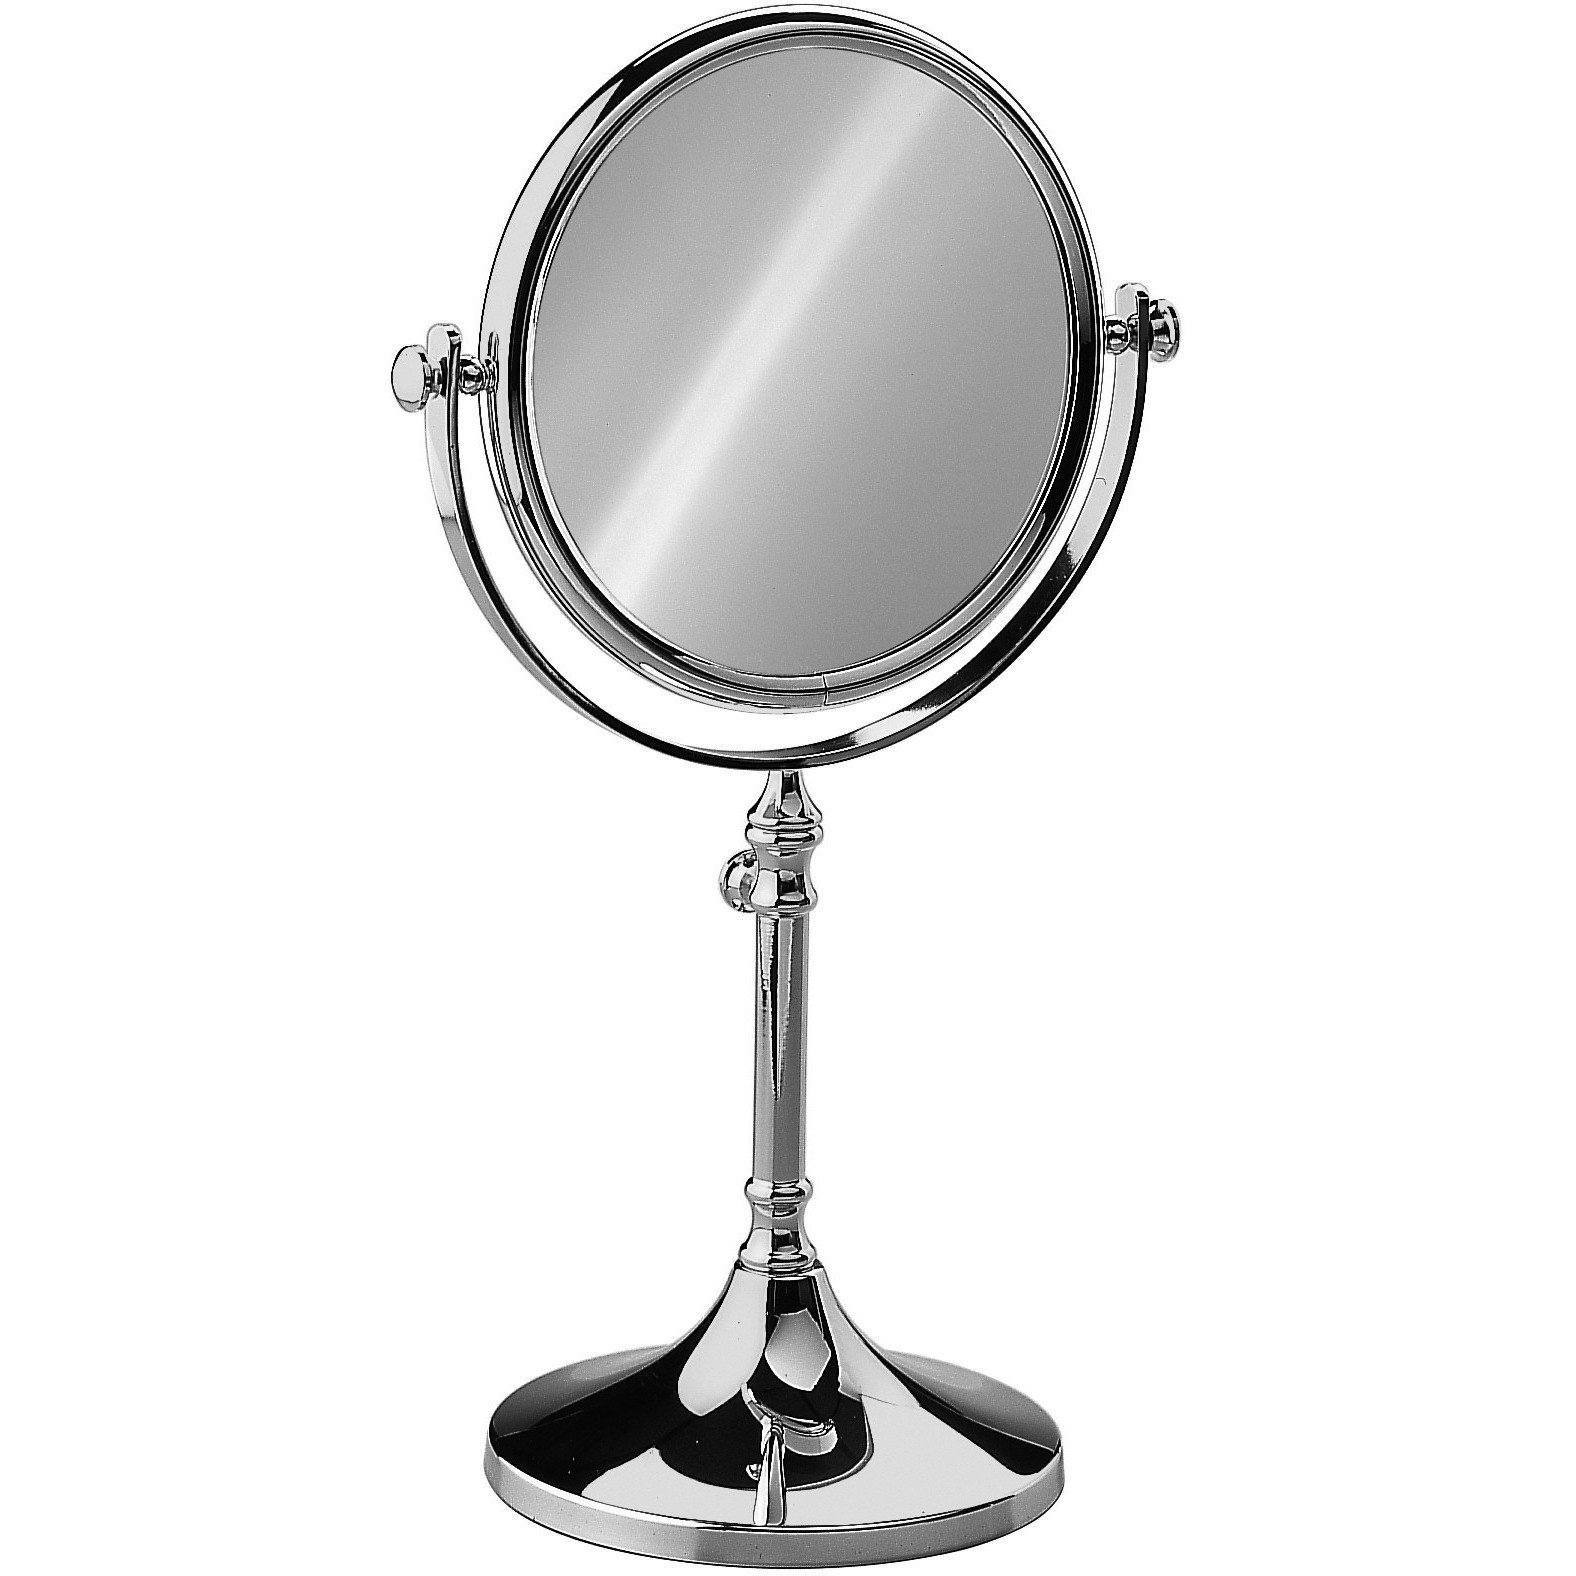 Elegant Round Table Top Double Sided Cosmetic Makeup Magnifying Mirror W Luxury Makeup Mirrors 300 00 350 00 350 00 400 00 400 00 450 00 450 00 500 00 300 400 3x 400 500 5x Adjustable Brass Double